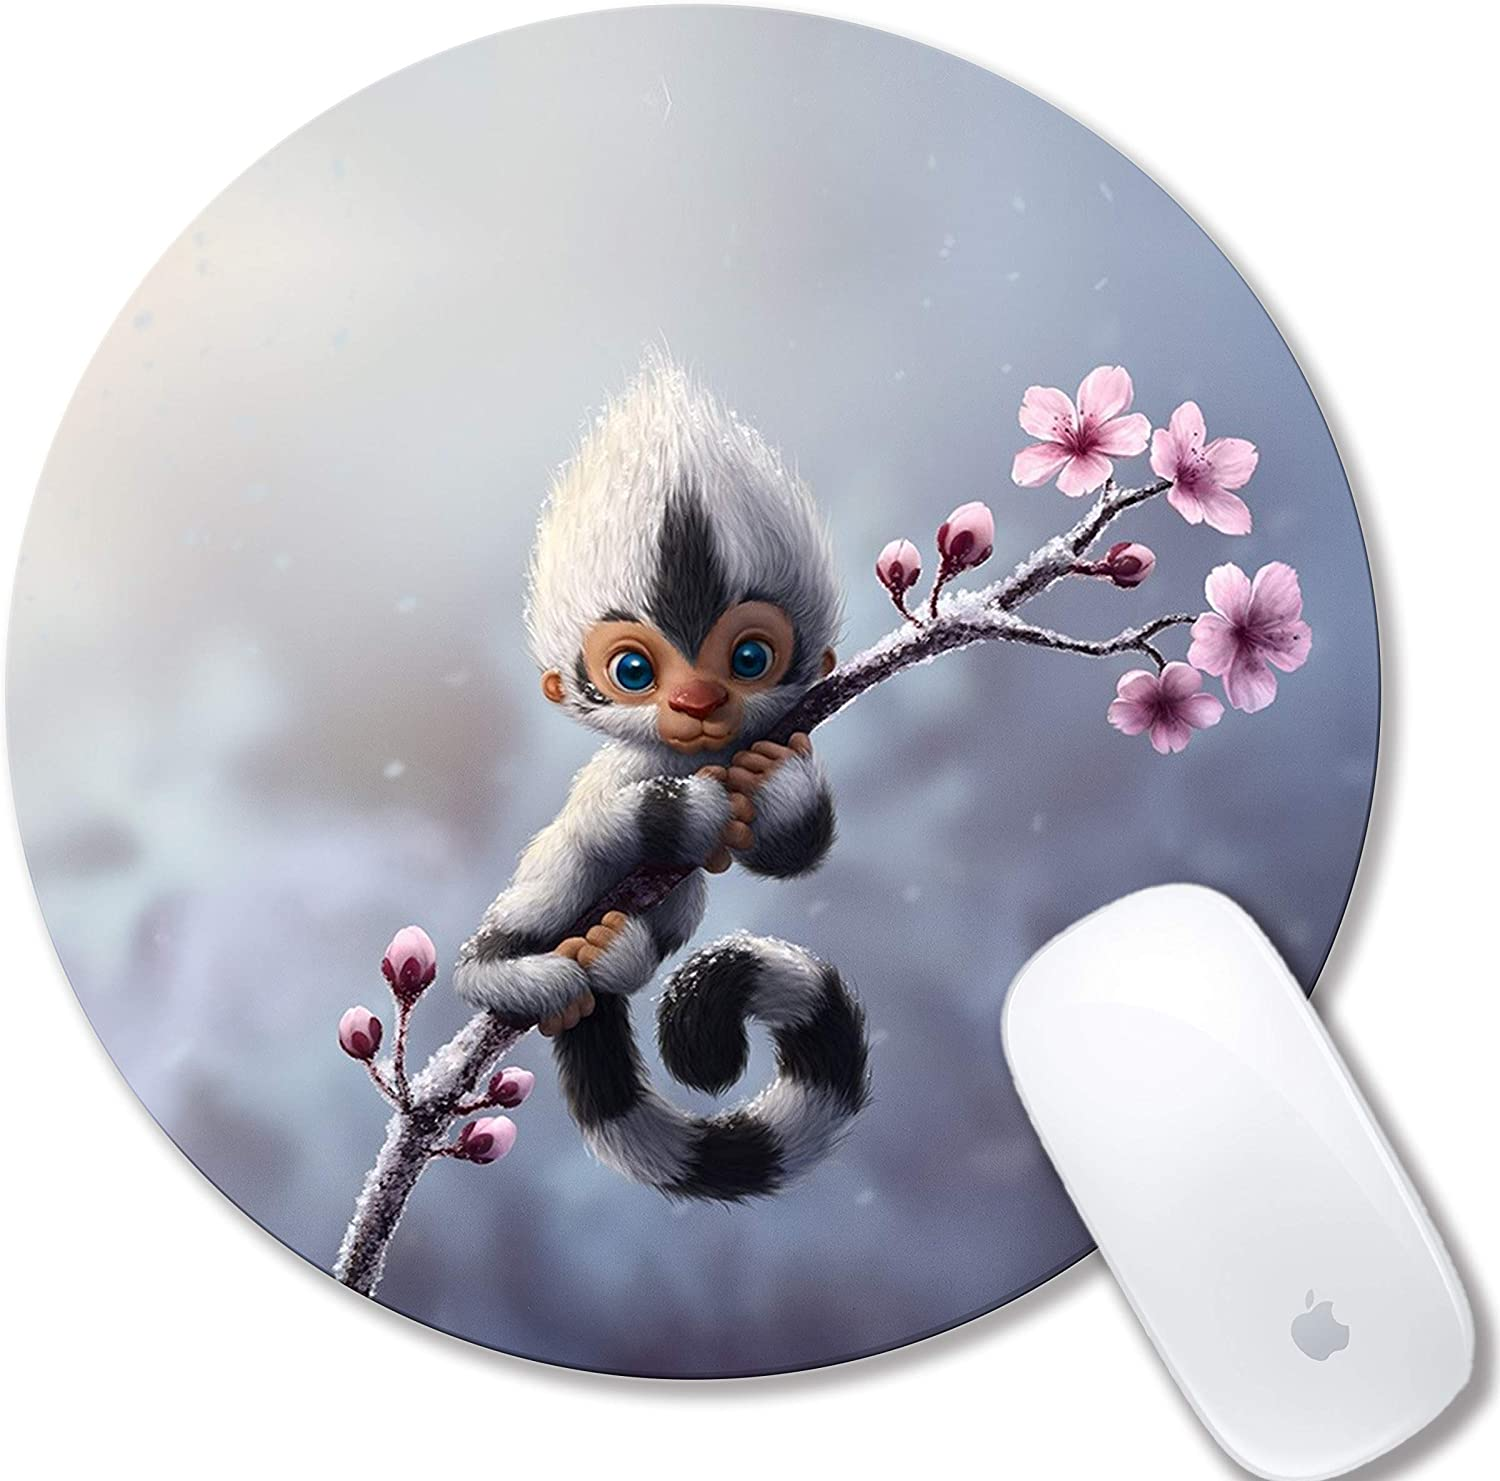 Tampa Mall Shalysong Tucson Mall Mouse pad Cute An Design Personalized Monkey